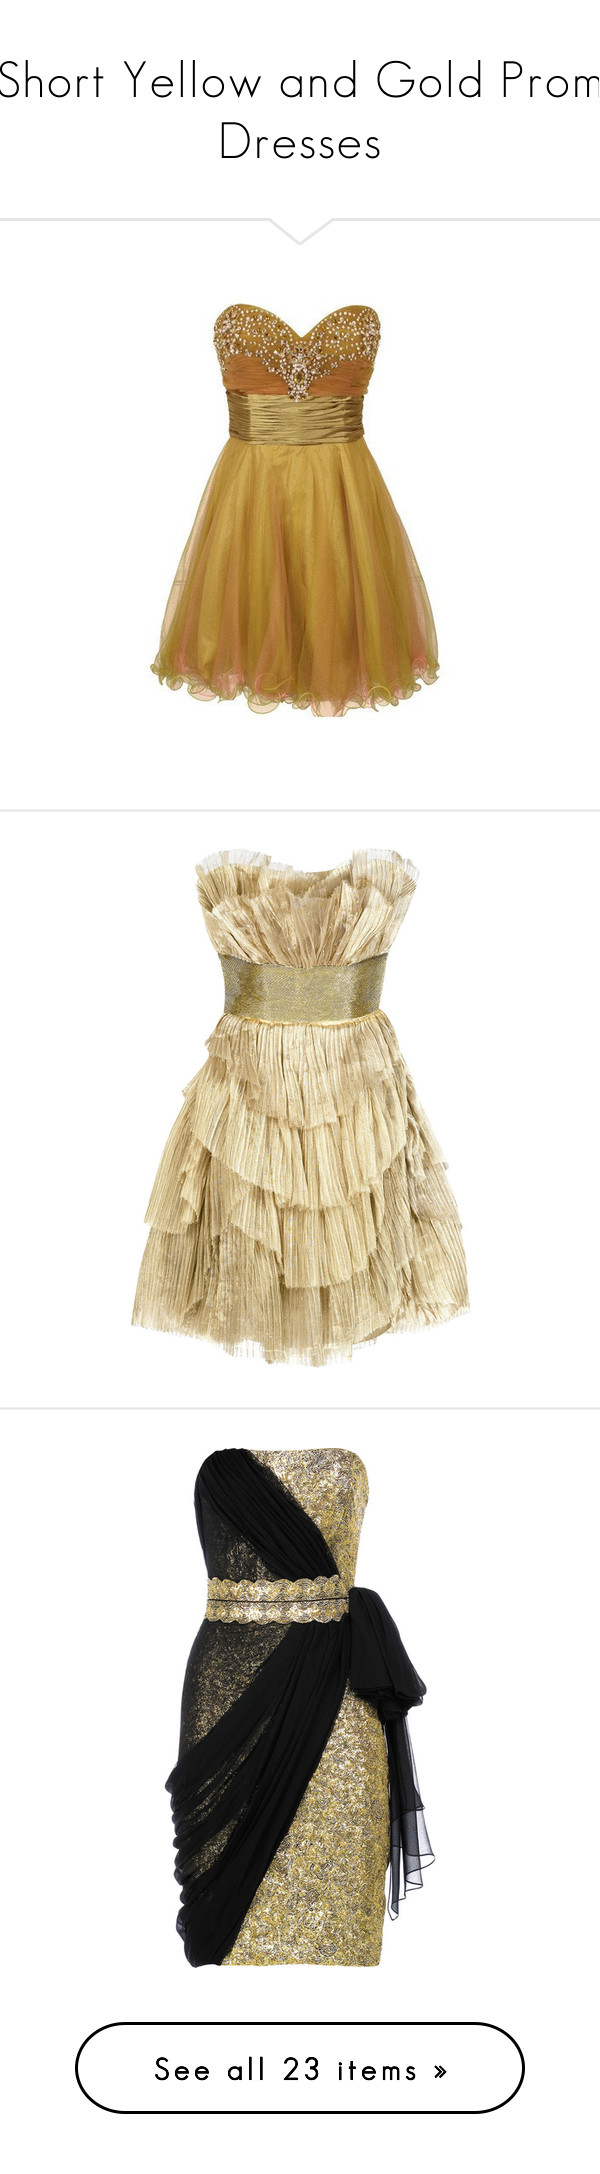 Short yellow and gold prom dresses